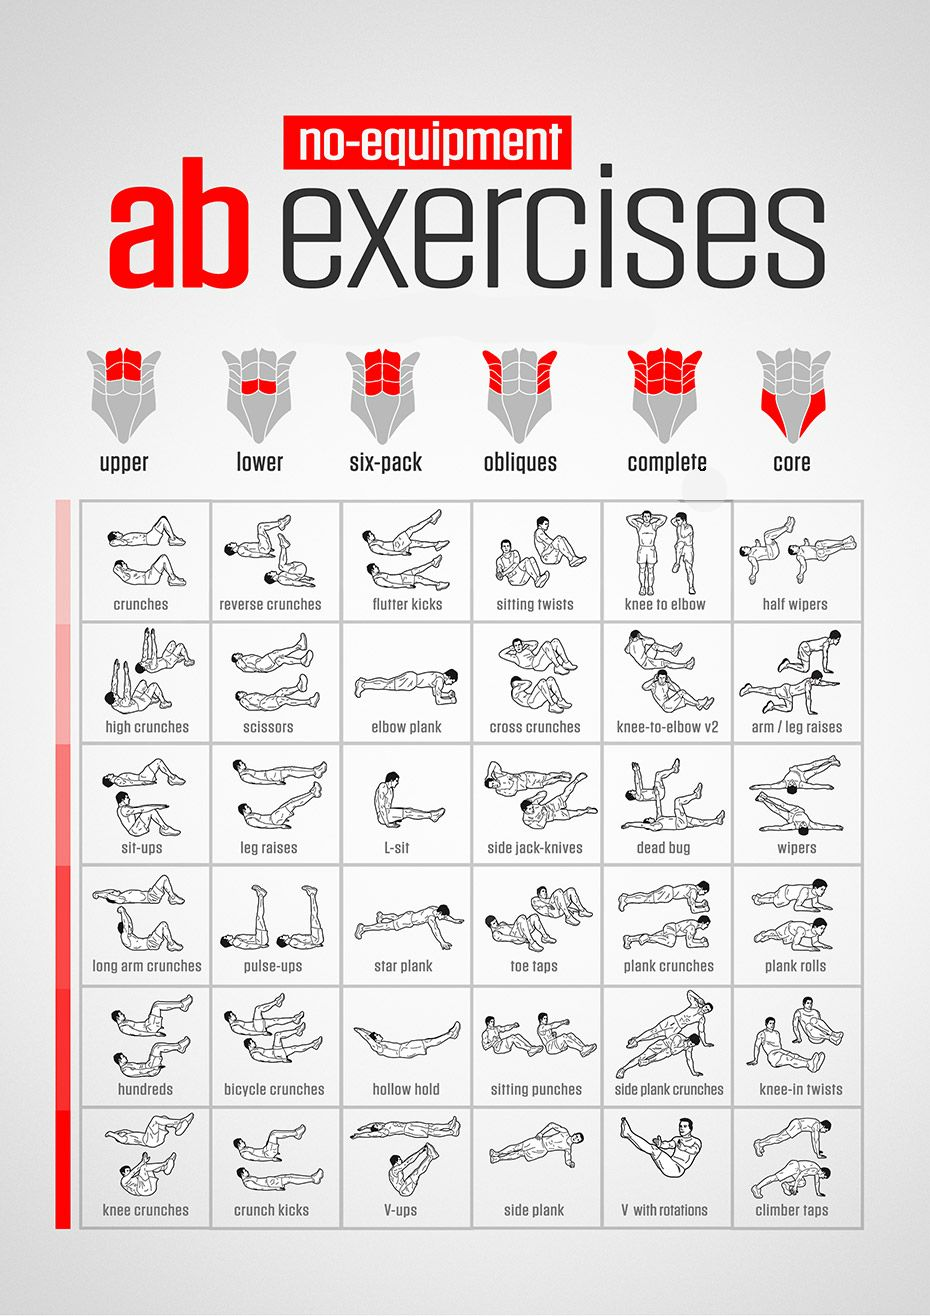 picture 5-Minute Workouts That Target Your Trouble Spots